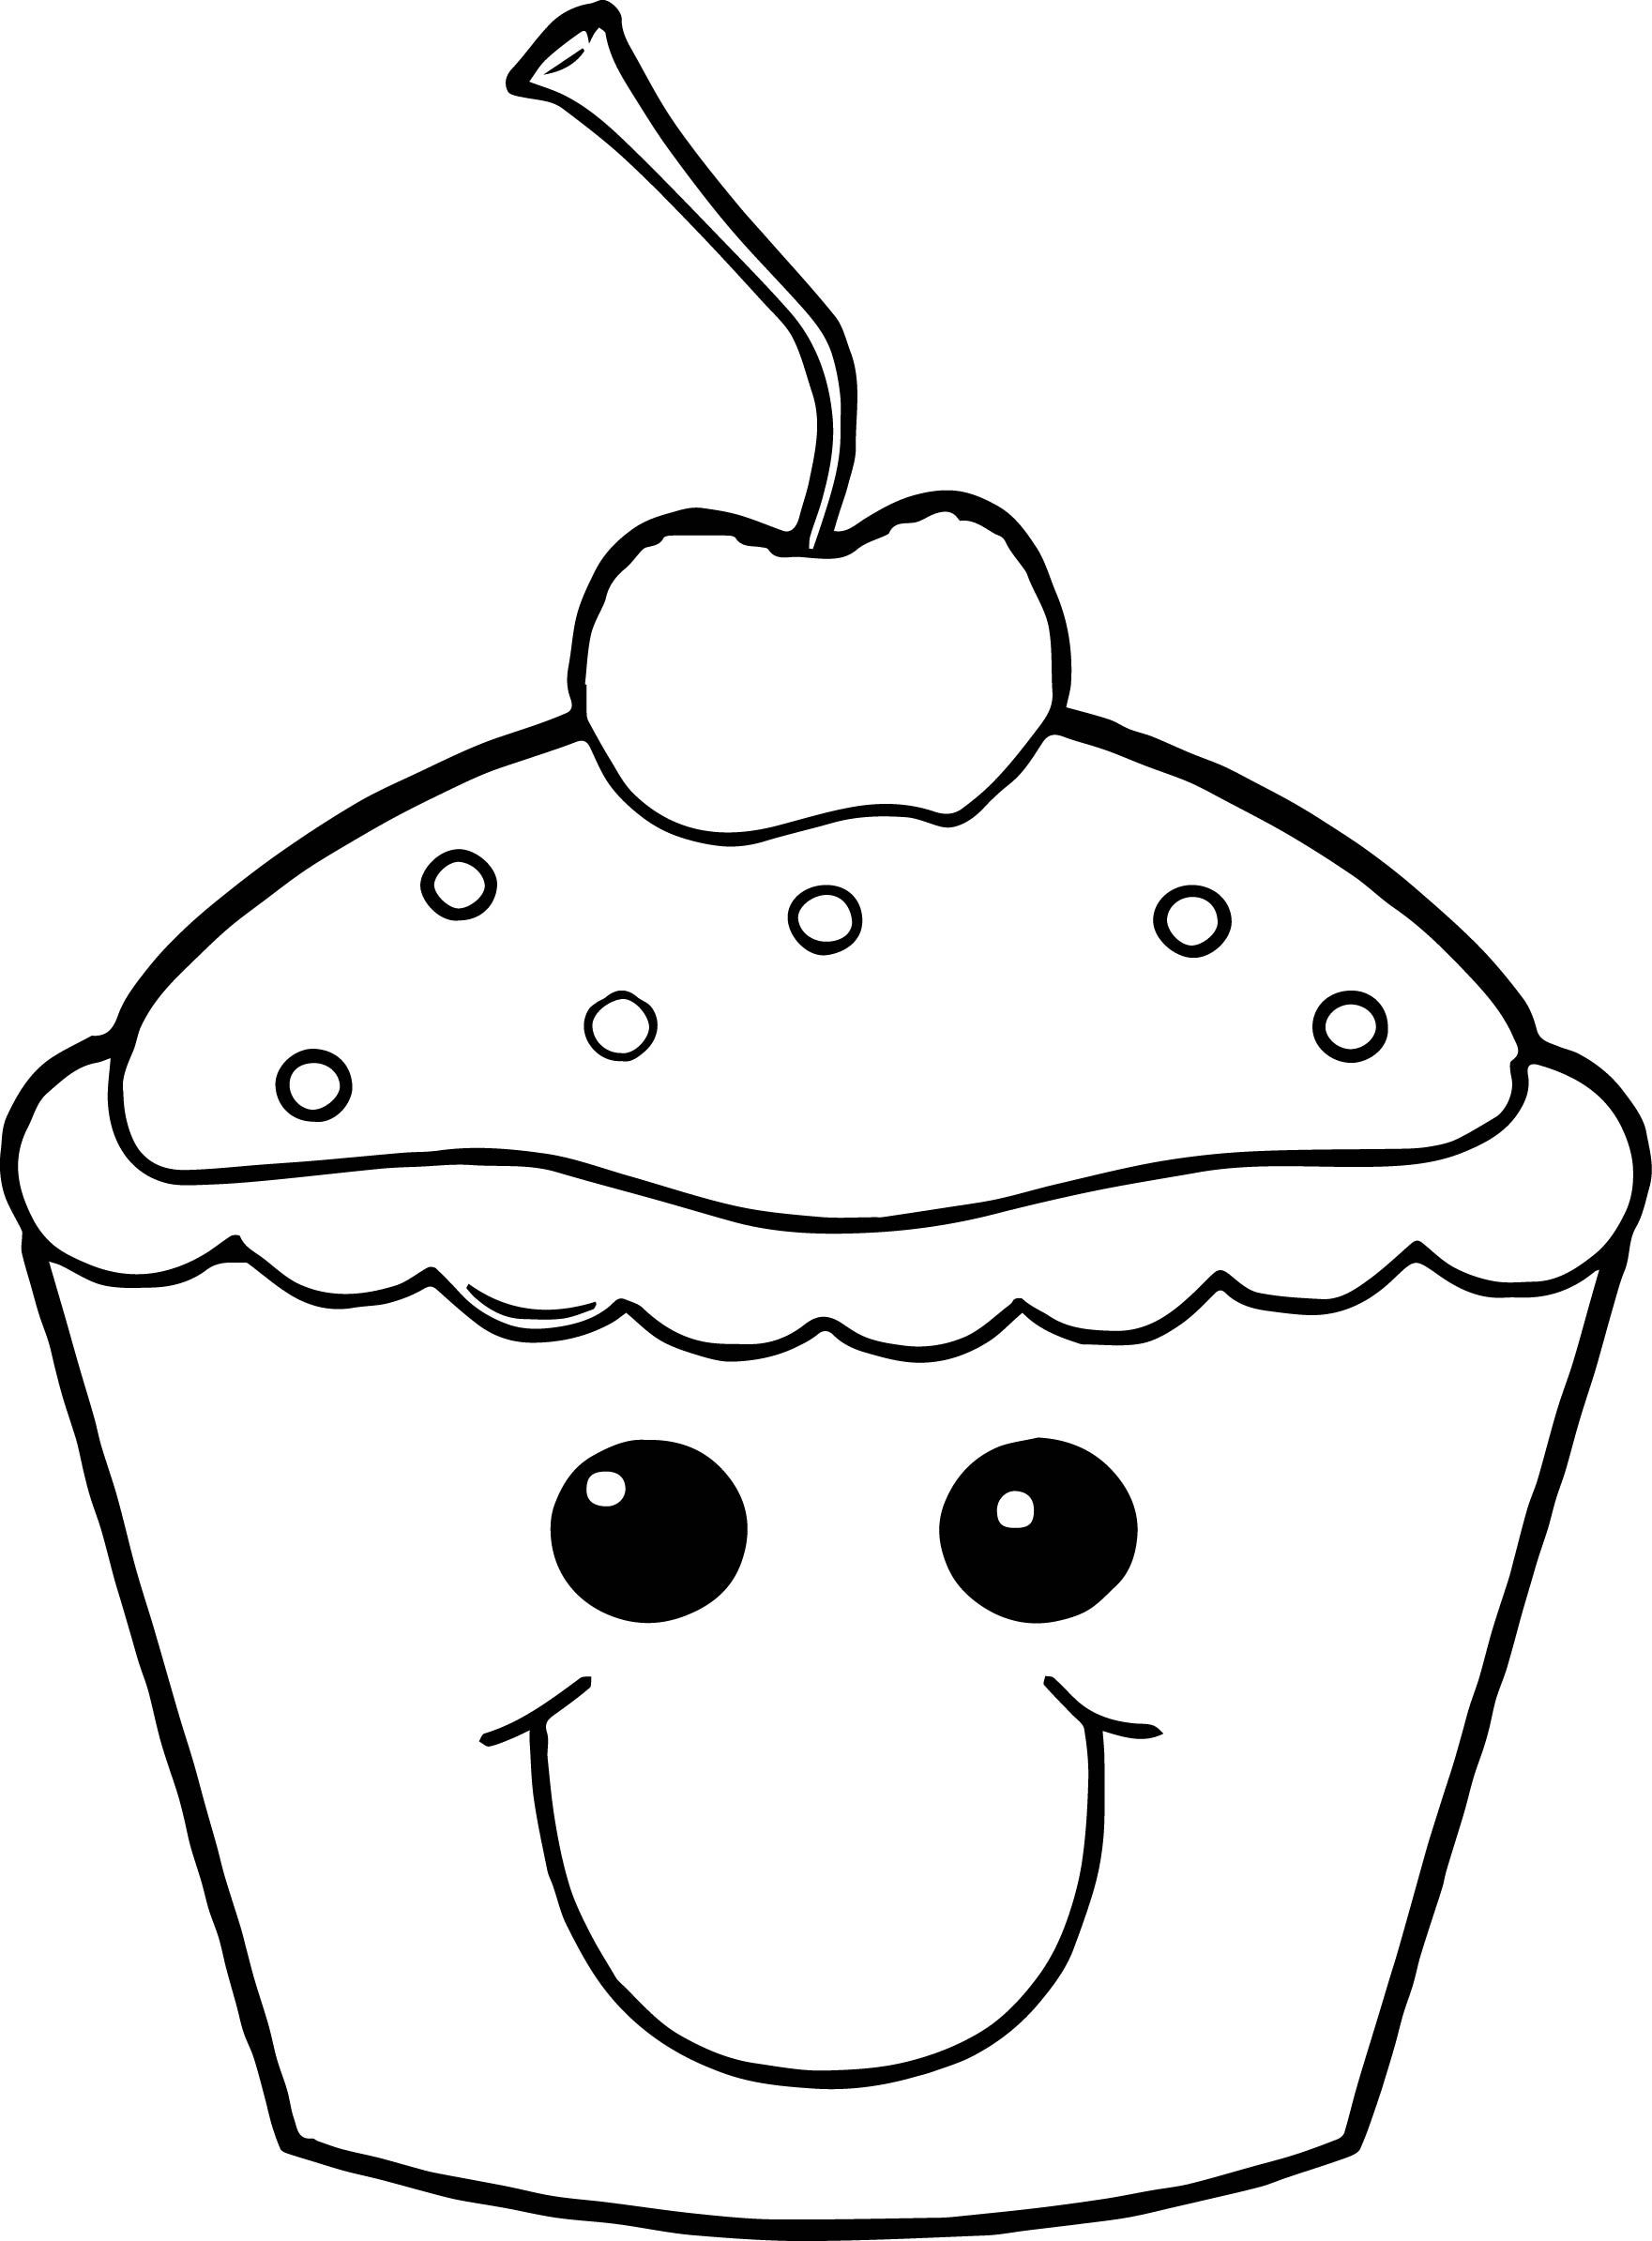 Kawaii Cute Cupcake Pages Coloring